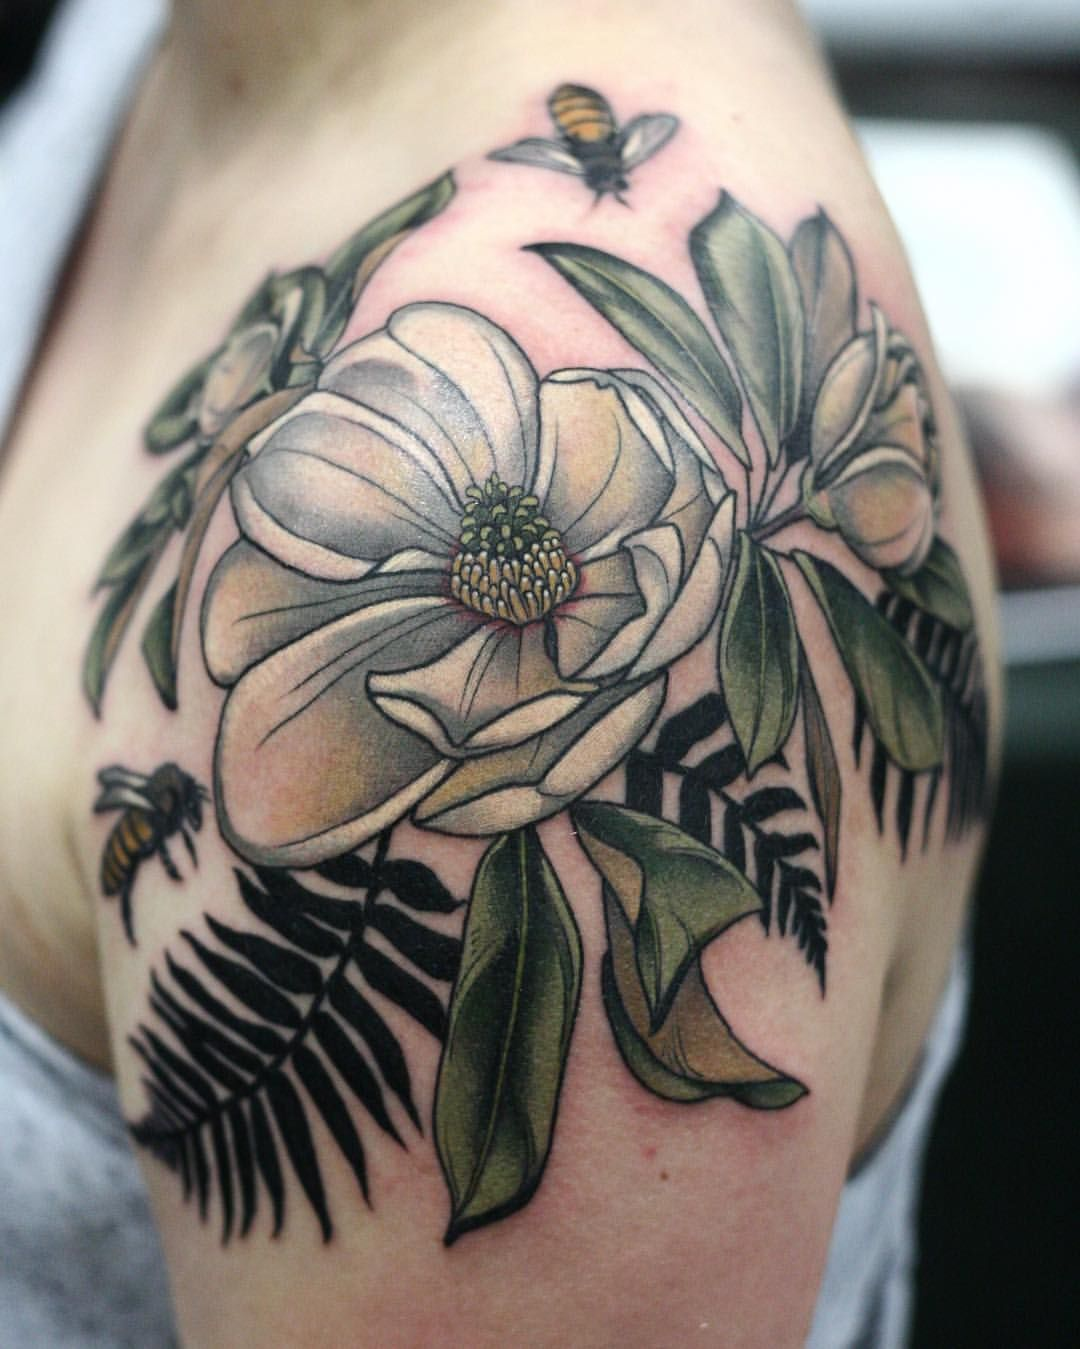 Pin by Meghan Malone on Girl Tattoo İdeas Magnolia